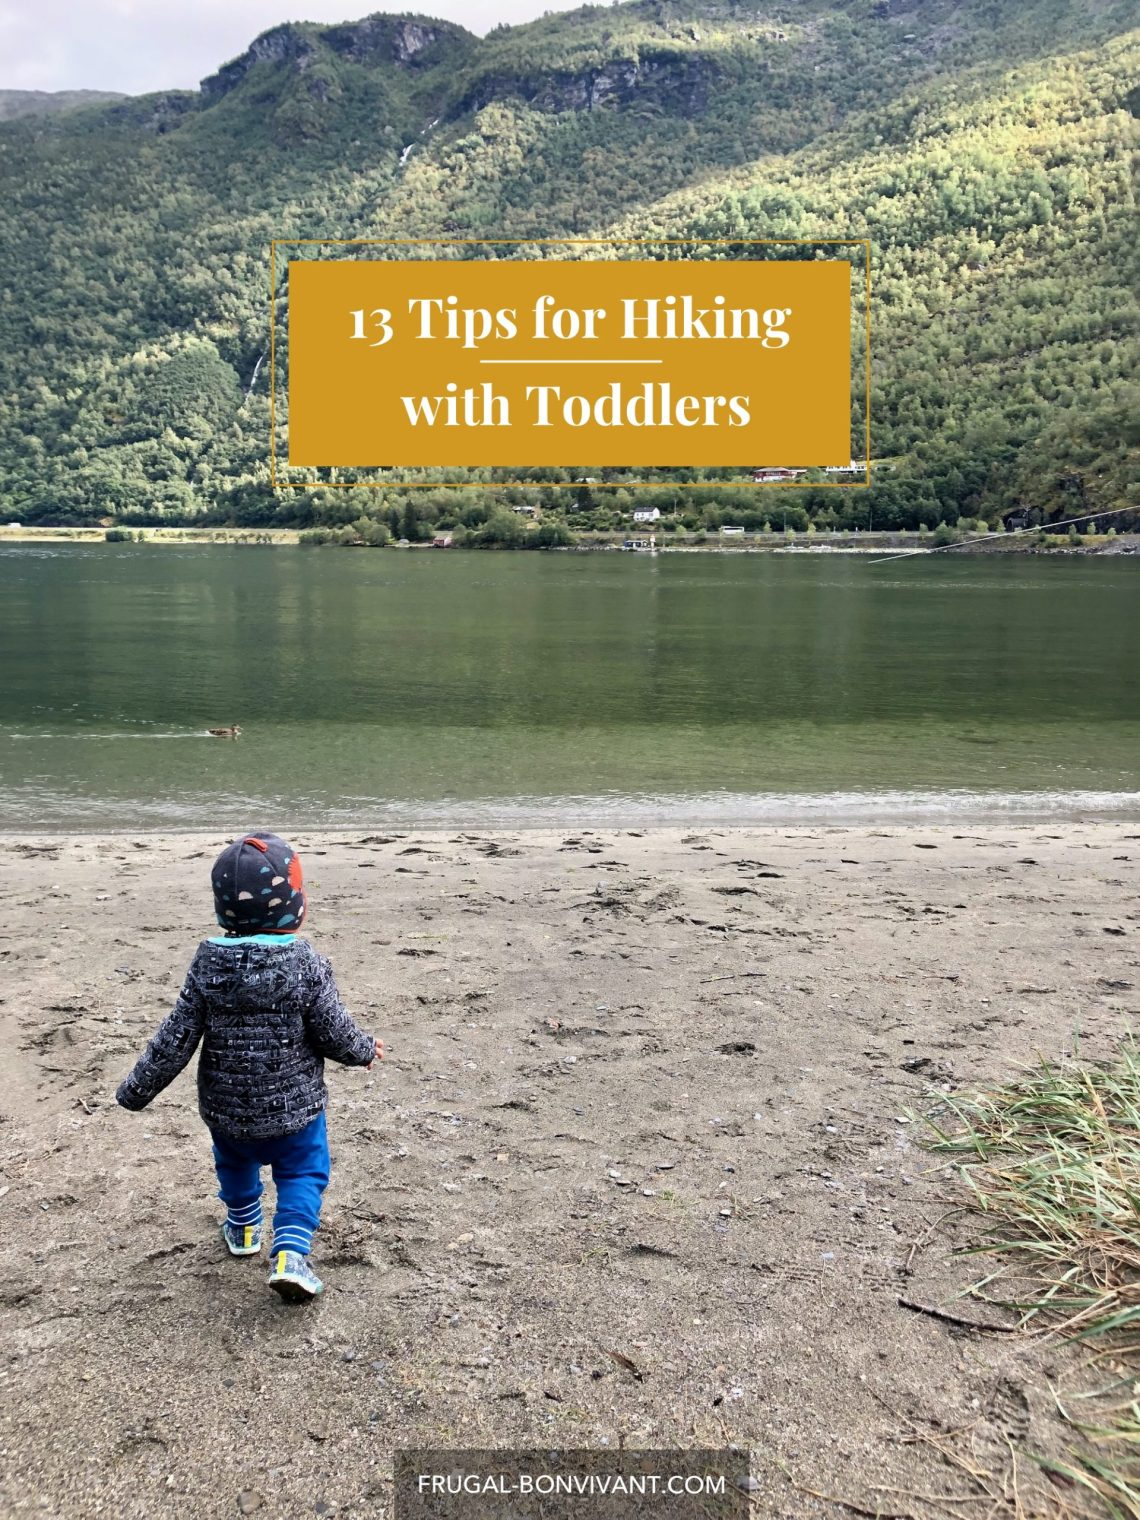 13 Tips for Hiking with Toddlers